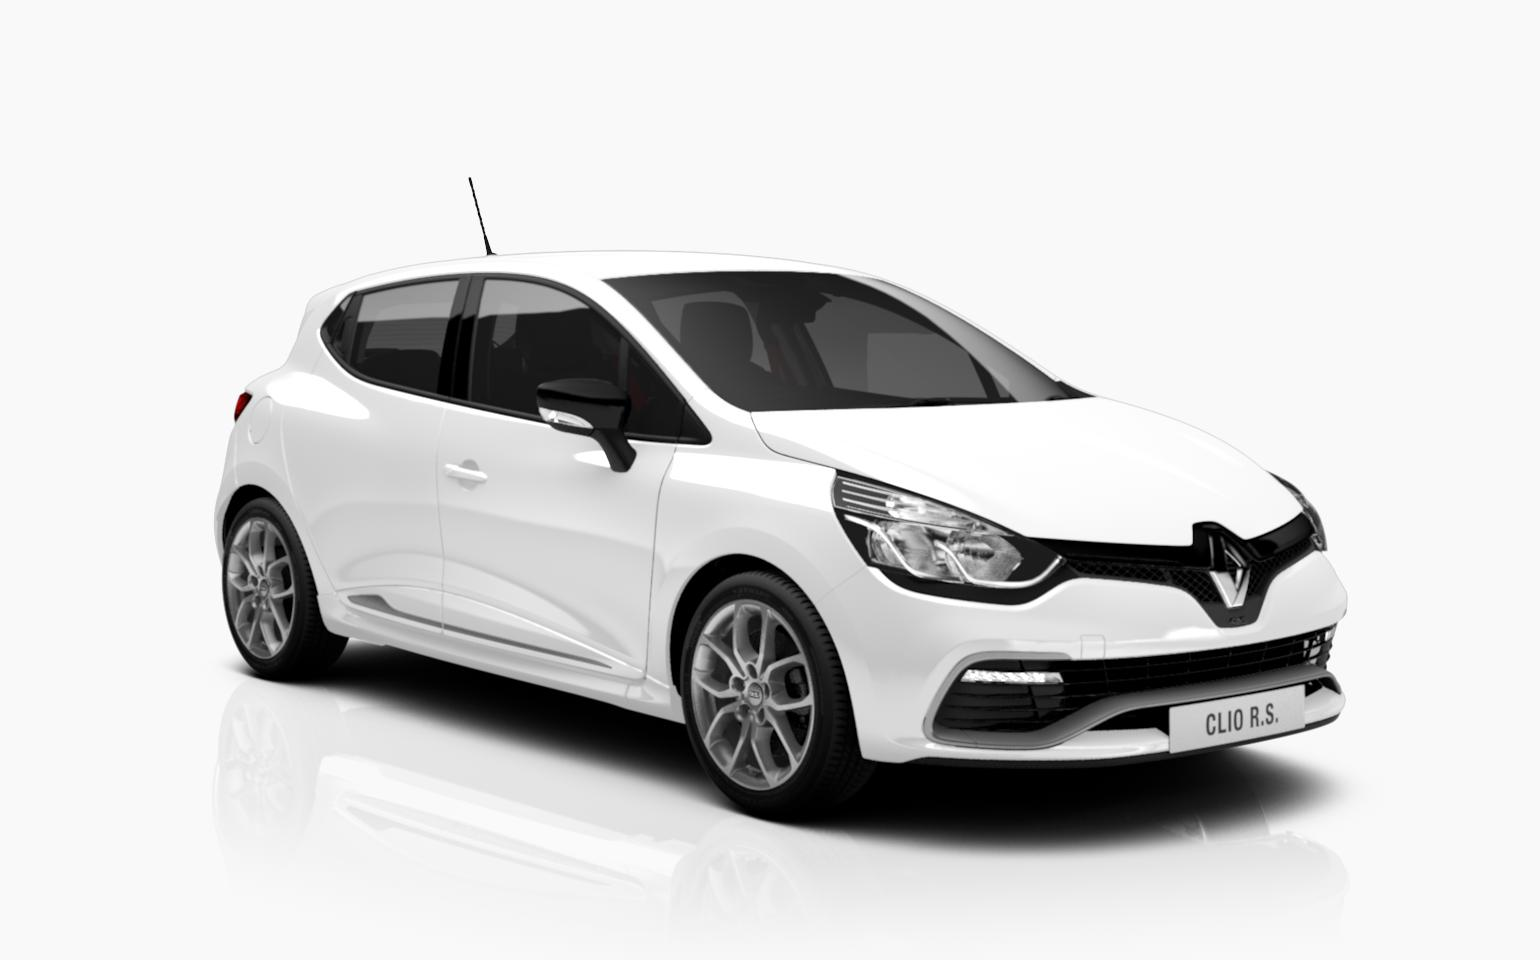 2016 renault clio r s trend car gallery. Black Bedroom Furniture Sets. Home Design Ideas